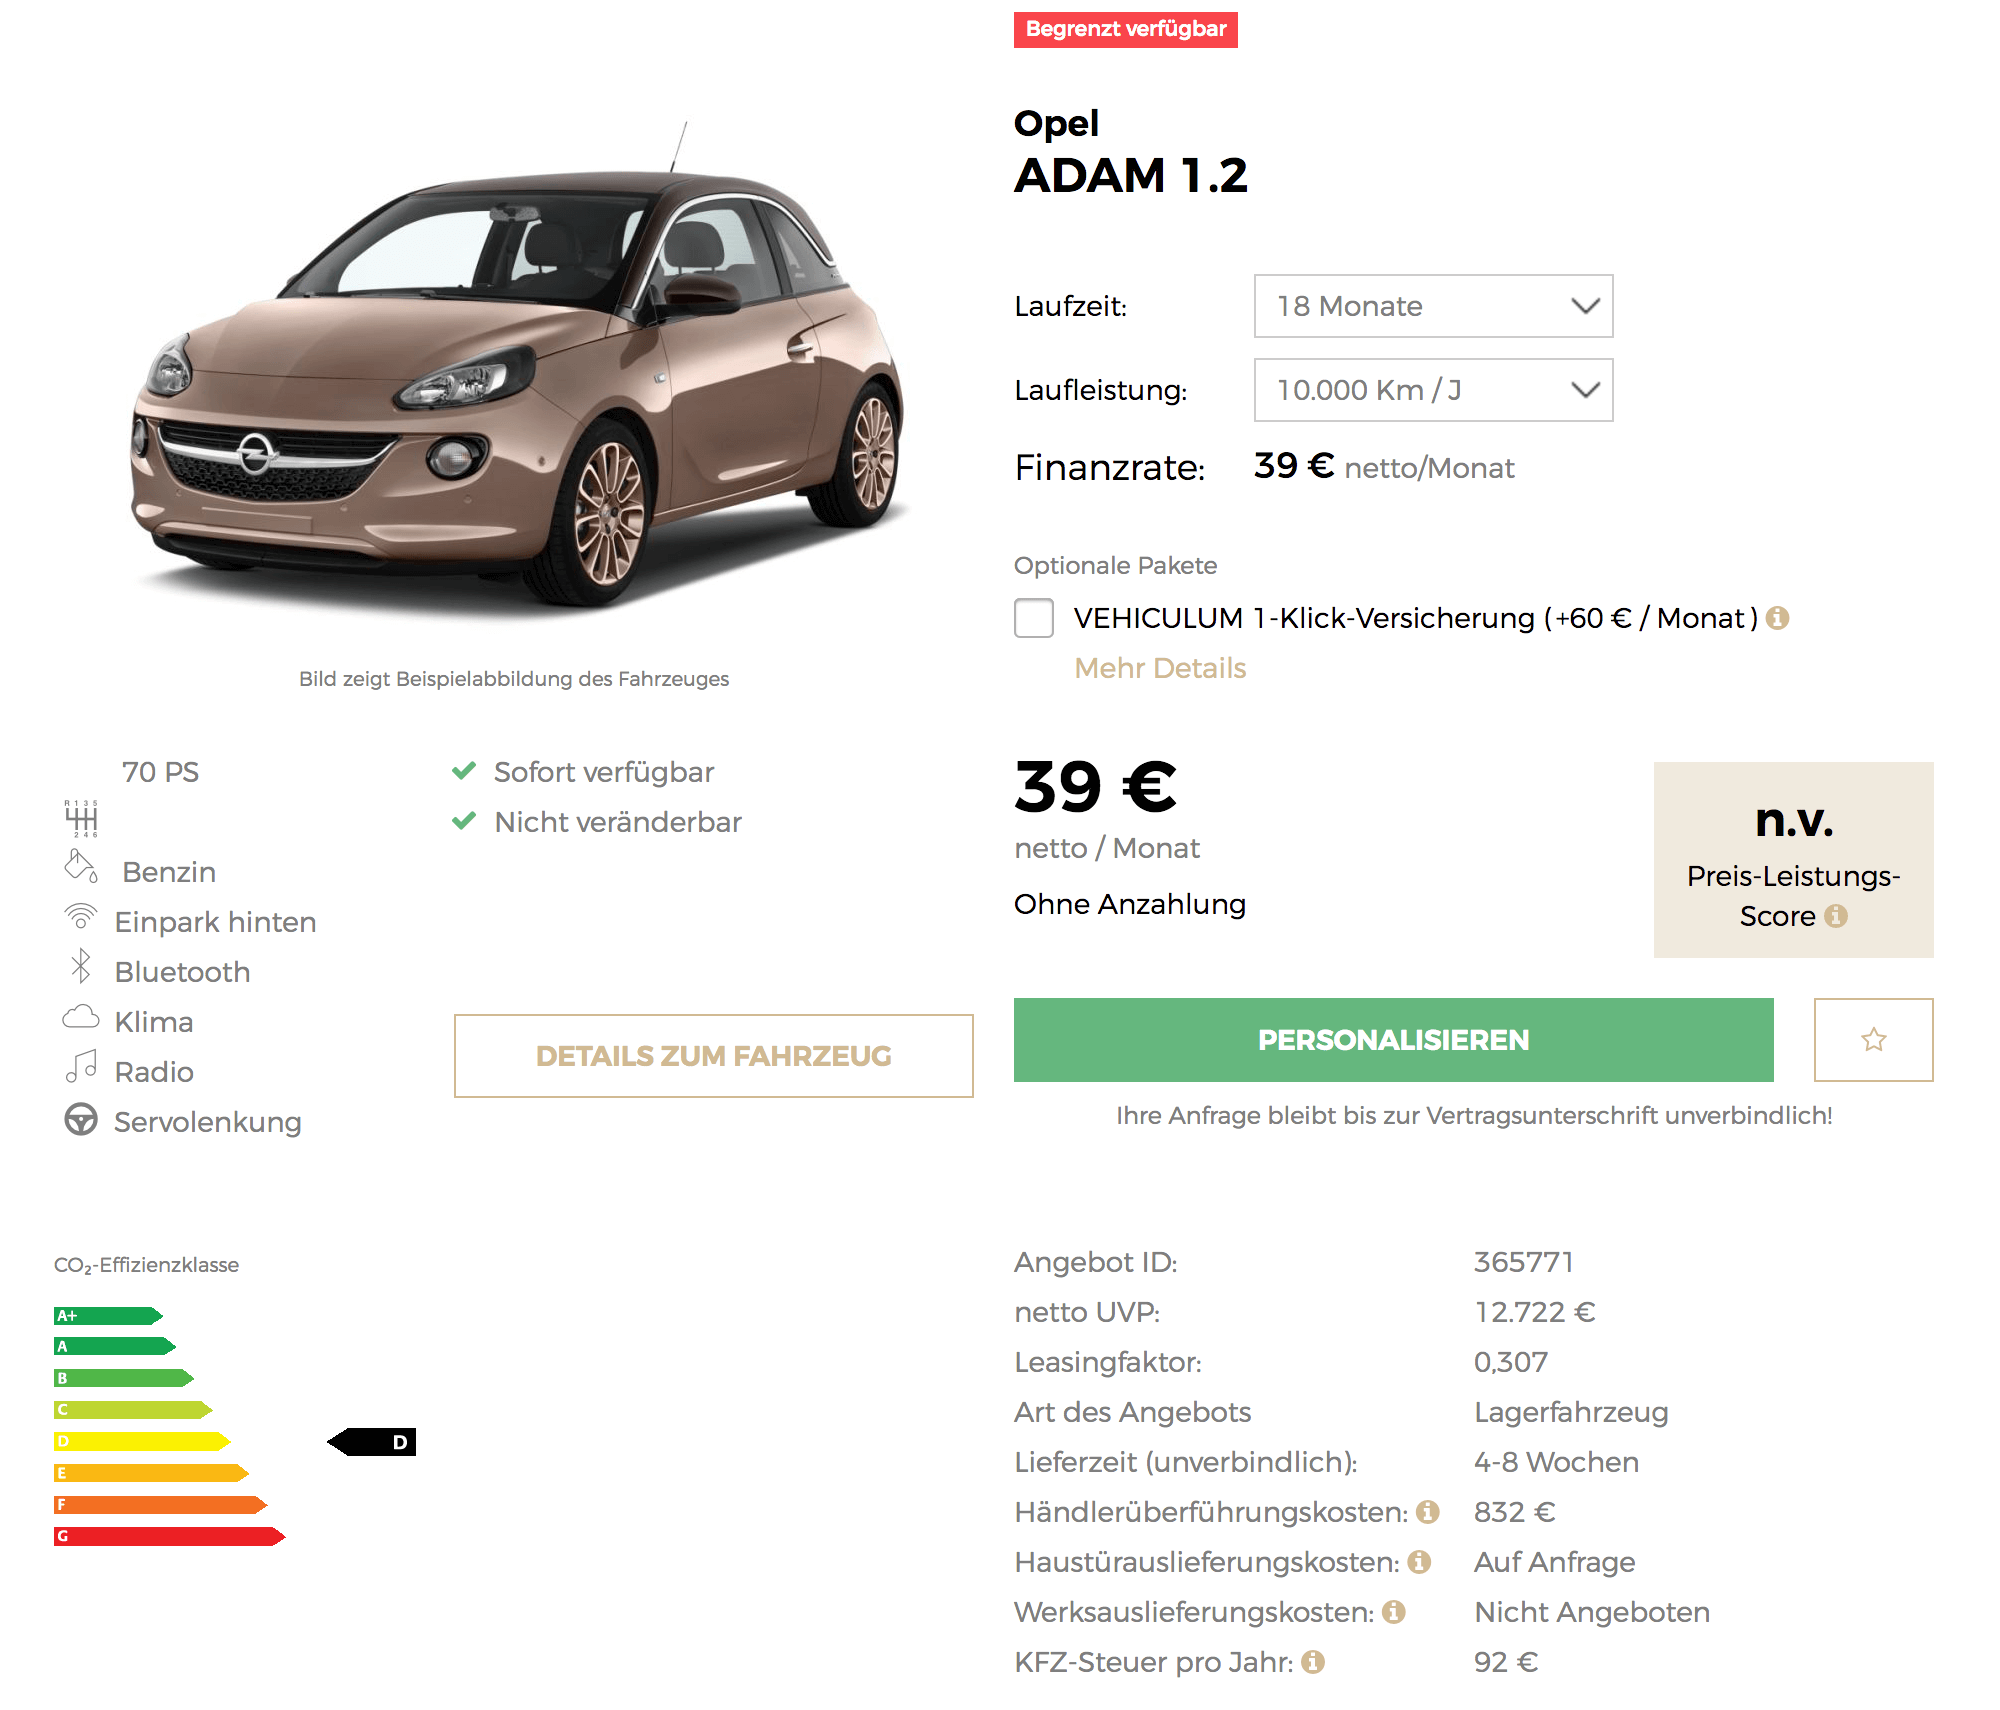 hot opel adam jam leasing f r 39 euro im monat netto. Black Bedroom Furniture Sets. Home Design Ideas